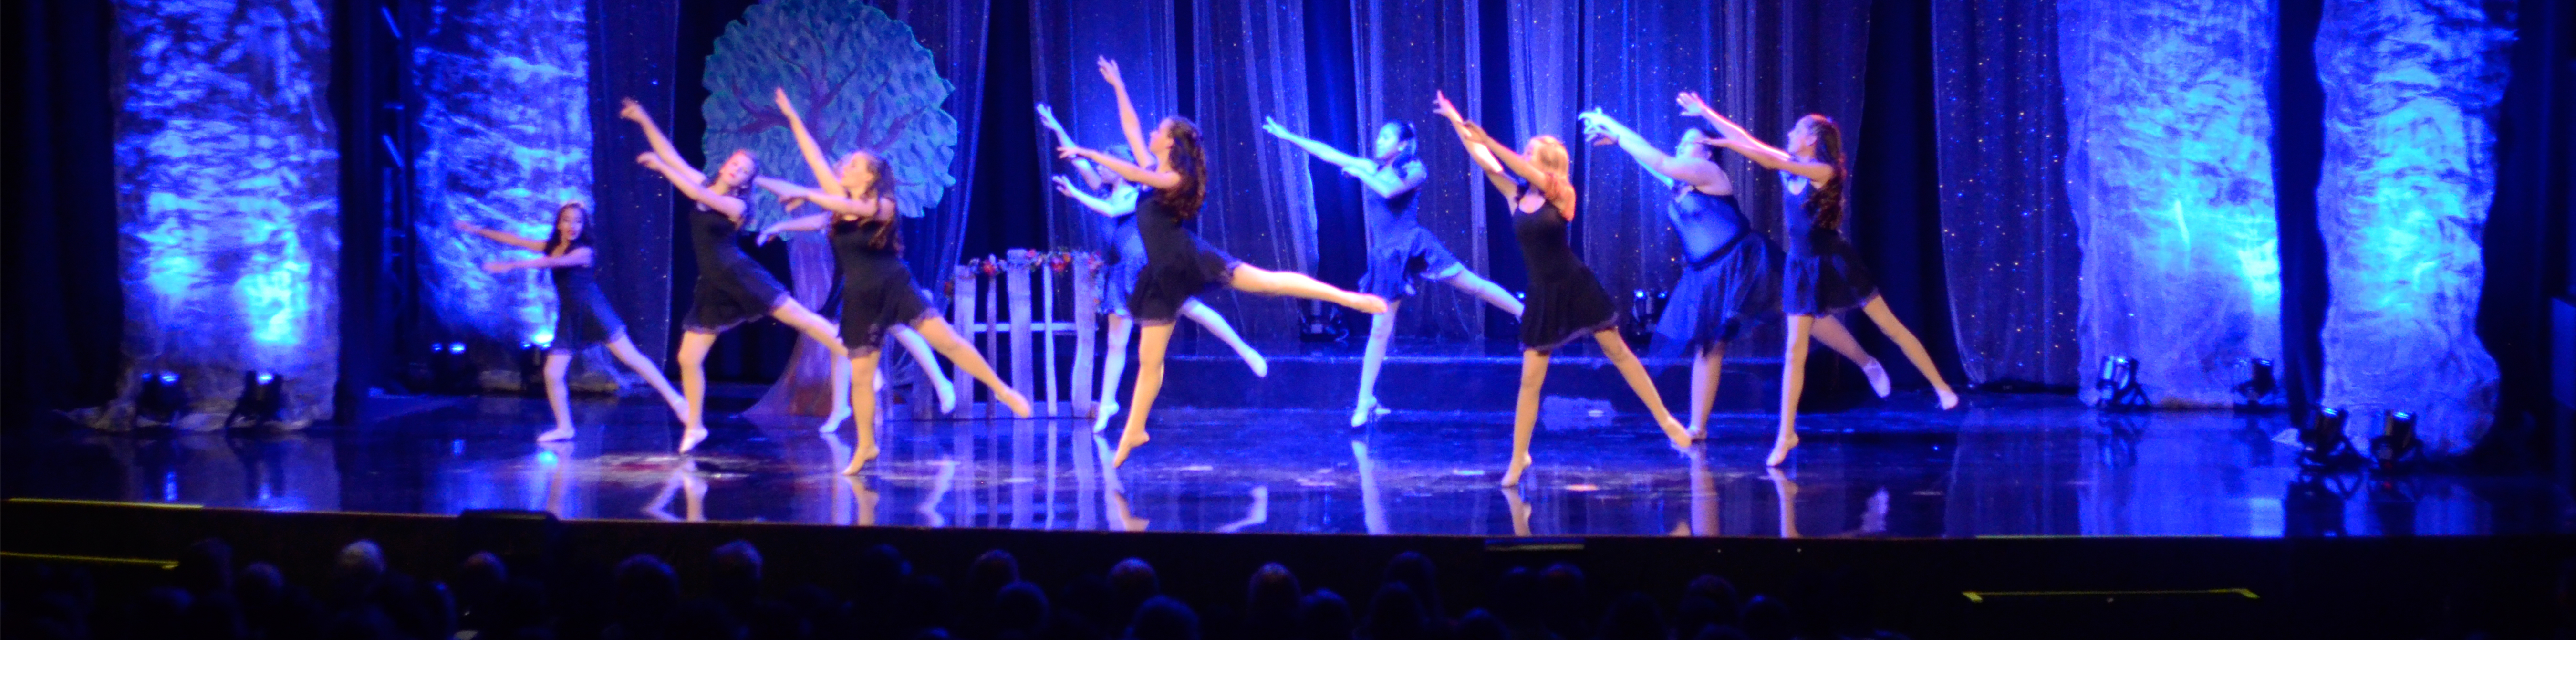 Our Programs Performing Arts Header Img